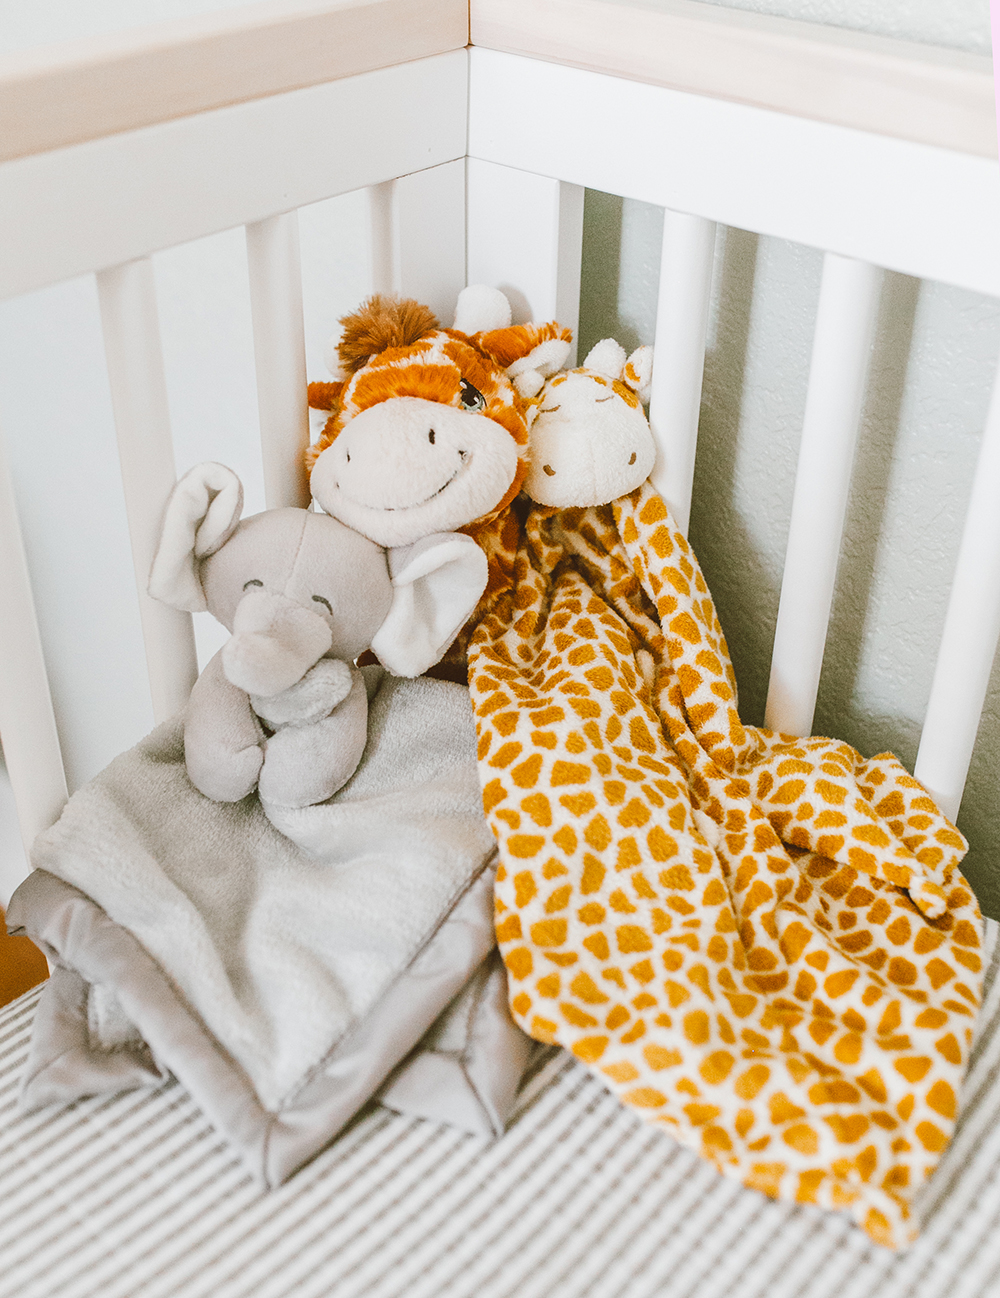 livvyland-blog-olivia-watson-baby-boy-gender-neutral-safari-nursery-theme-tour-reveal-earth-tones-7